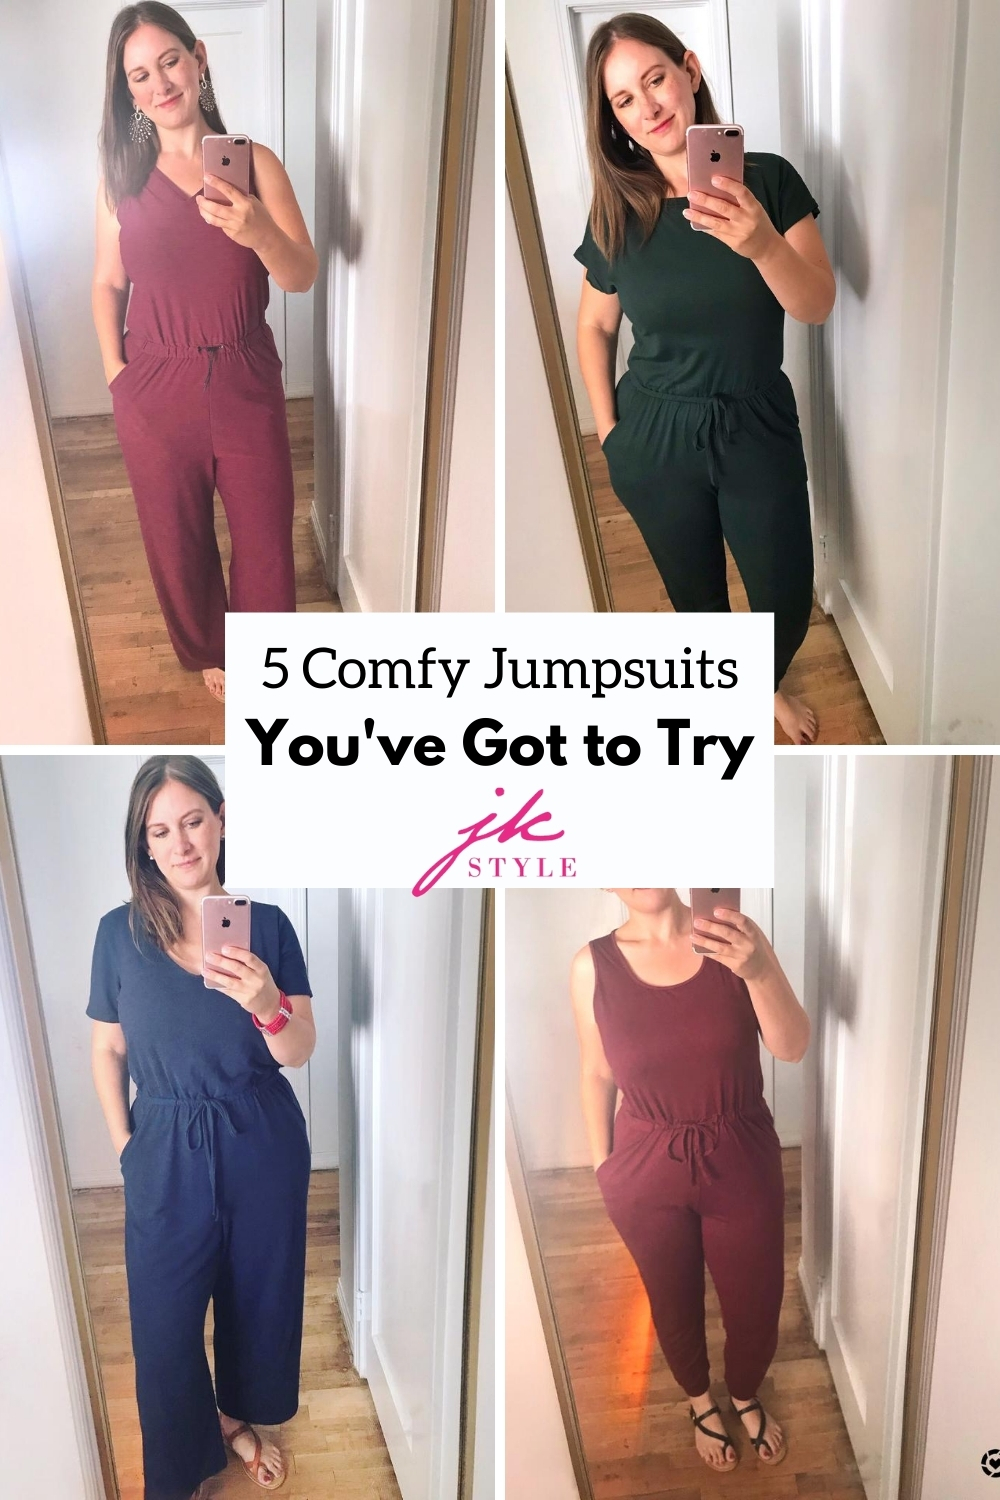 5 Comfy Jumpsuits to Try